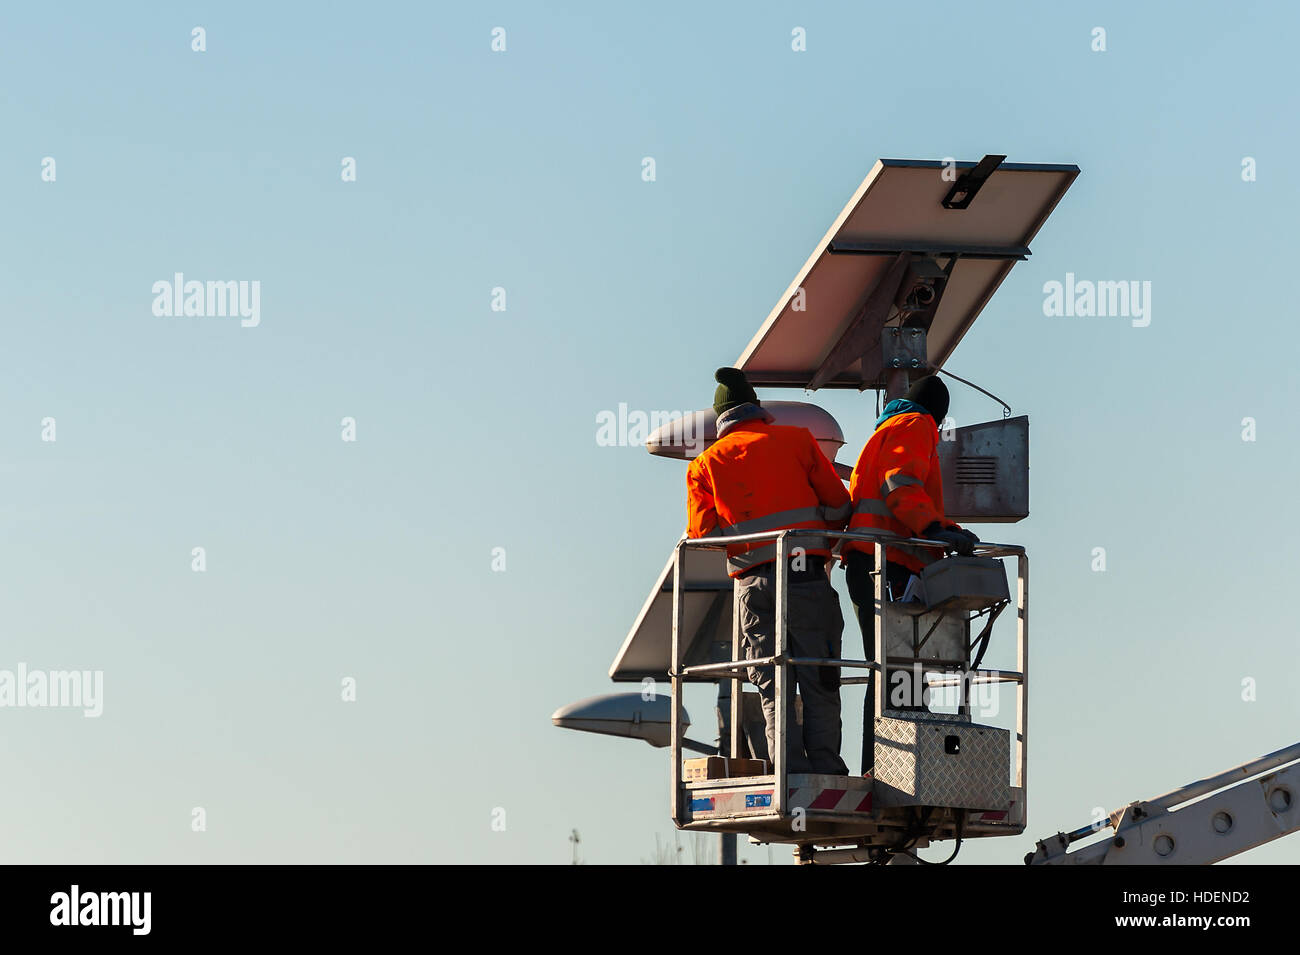 Workers in lift bucket during the maintenance of streetlight powered by a solar panel. - Stock Image